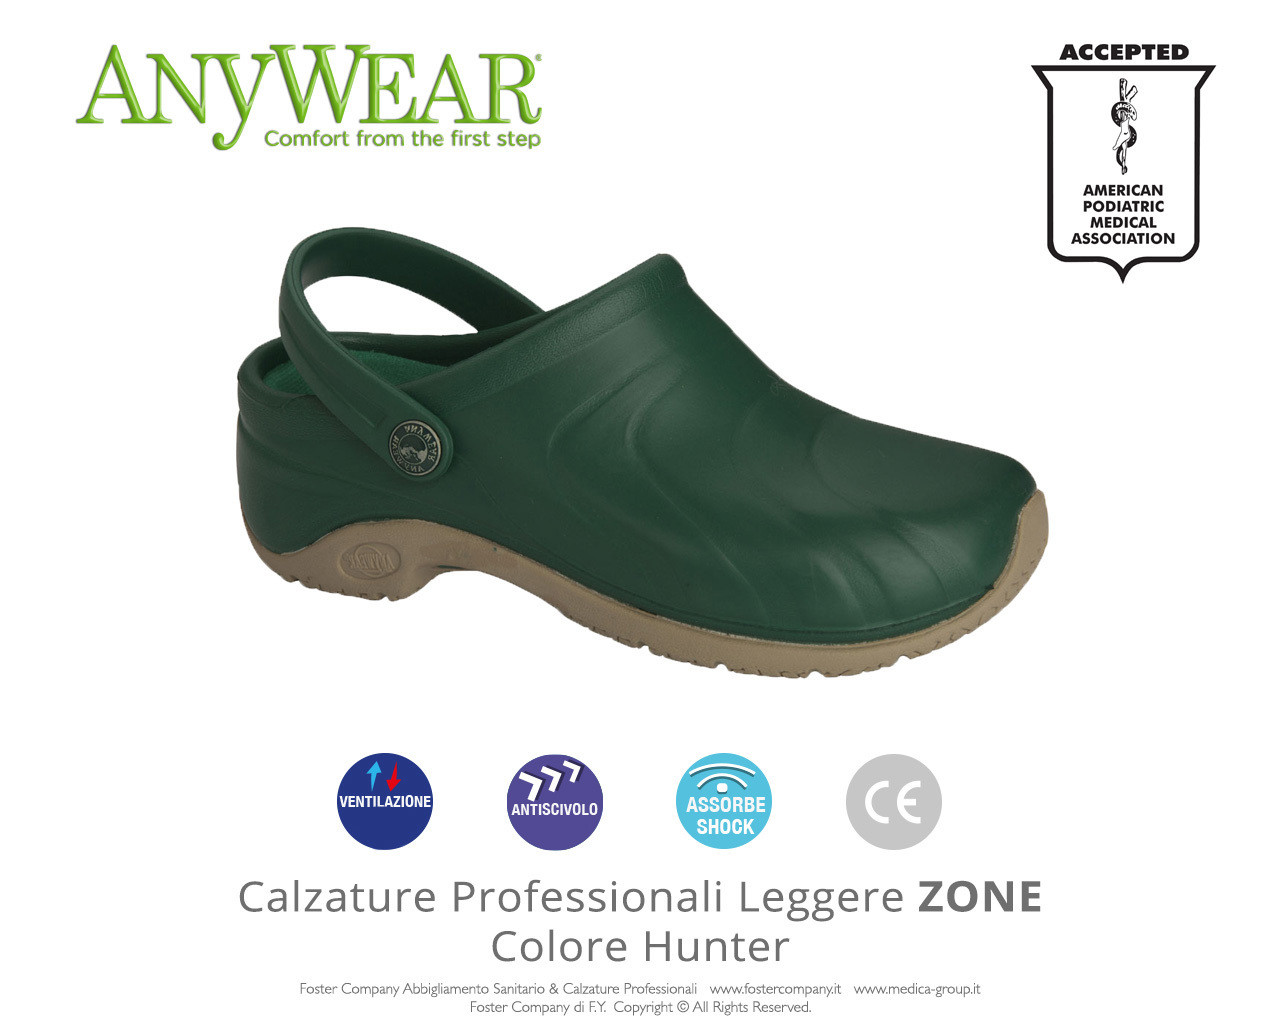 Calzature Professionali Anywear ZONE Colore Hunter